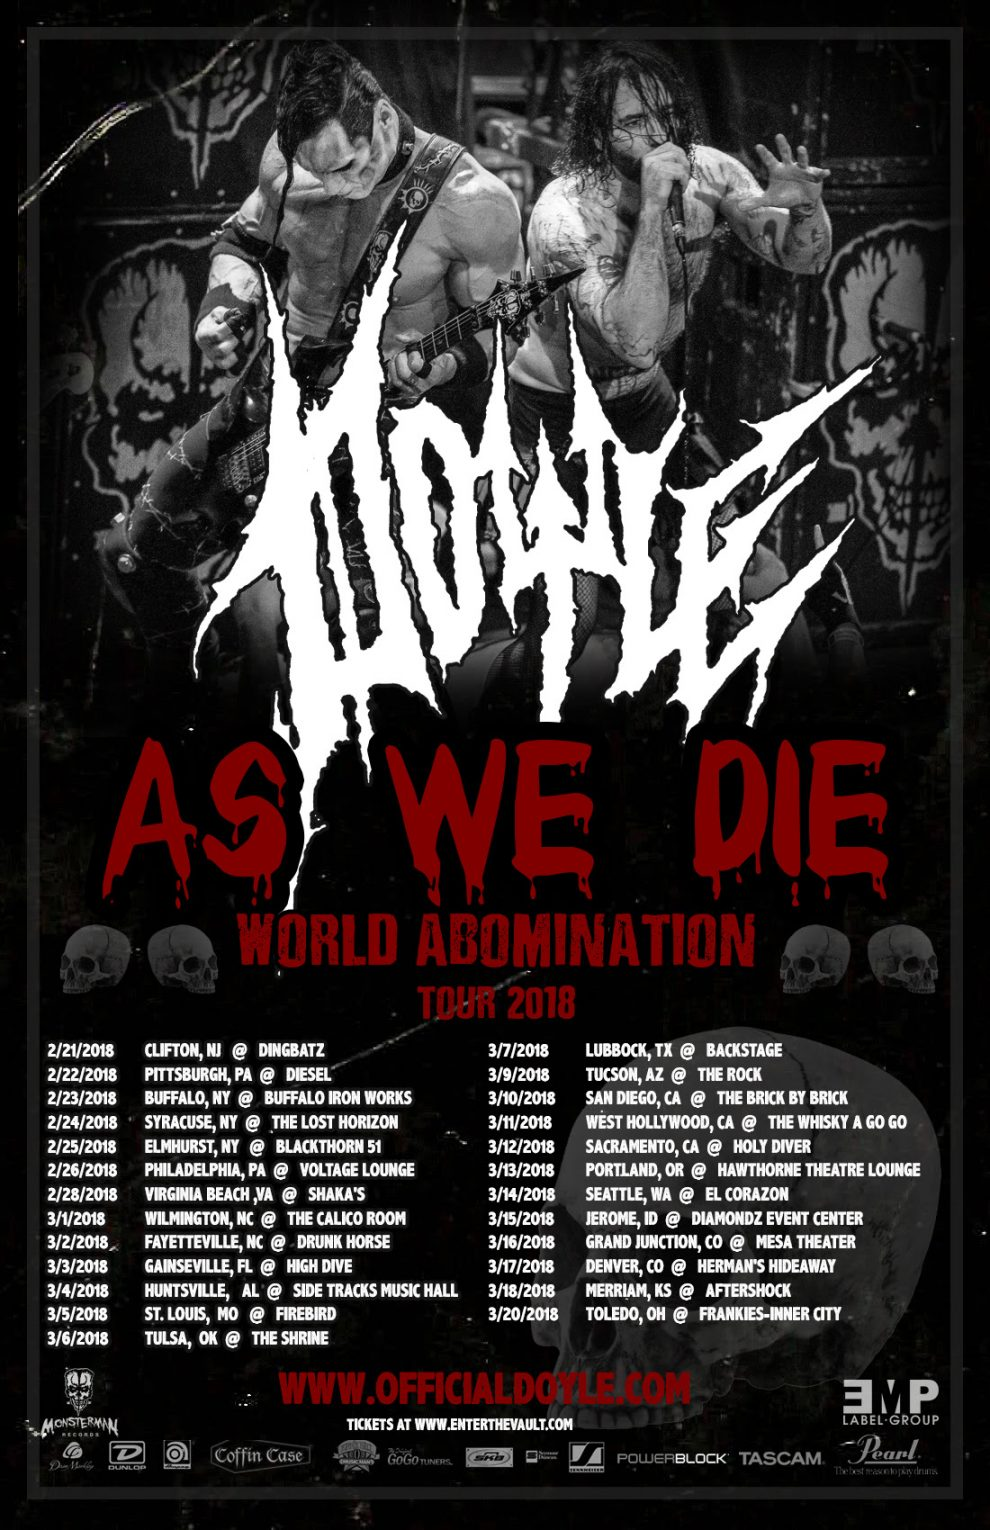 doyle-as-we-die-world-abomination-tour-2018-990x1530